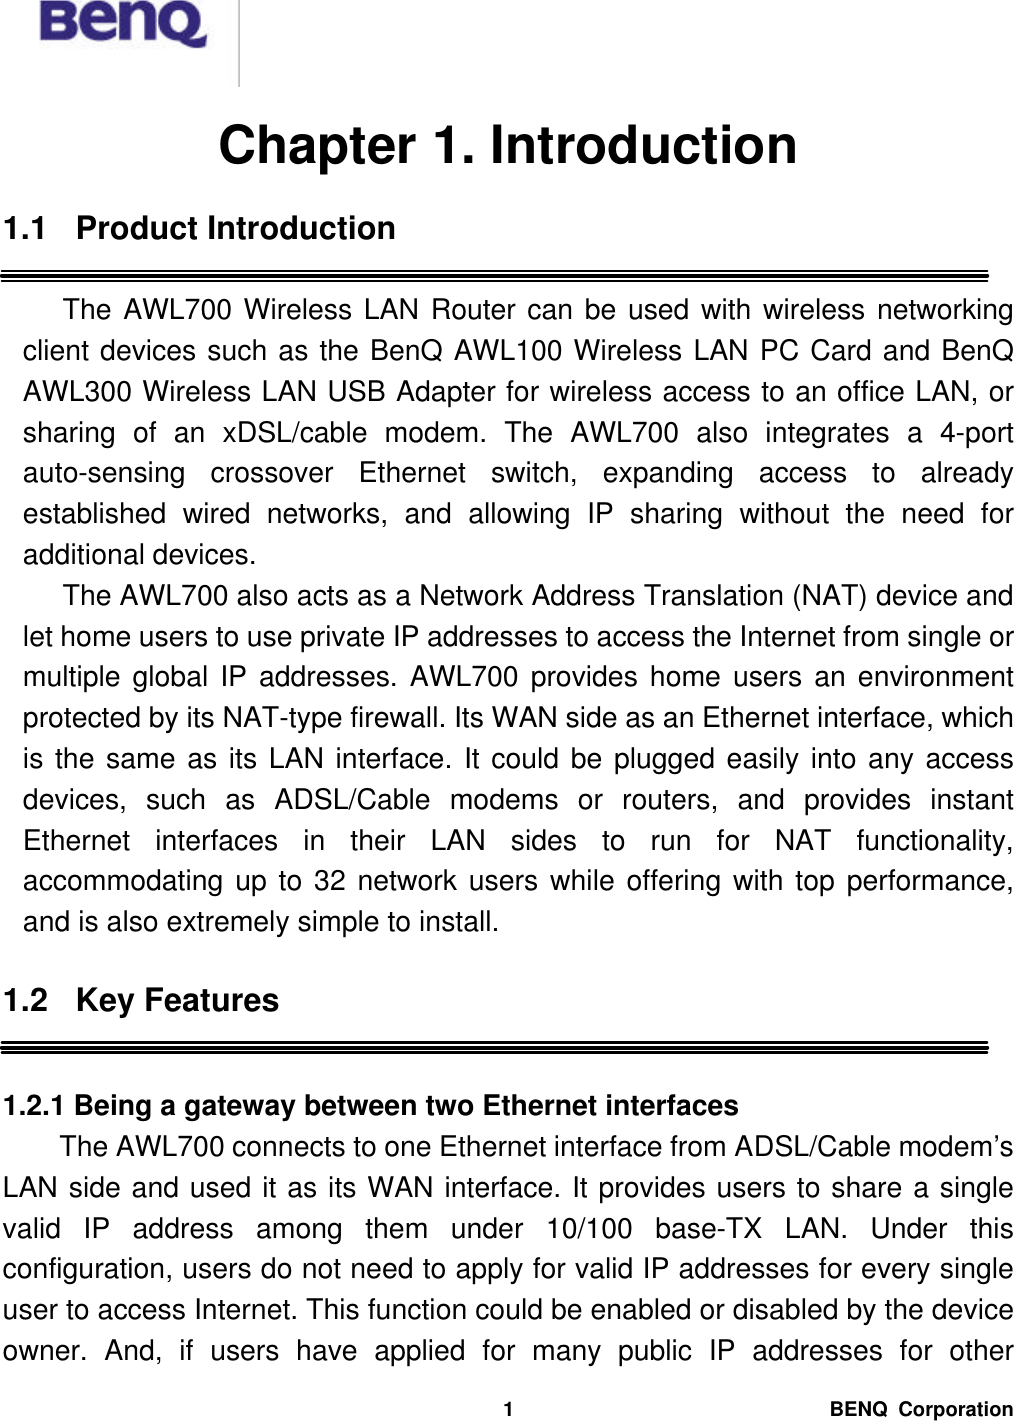 DOWNLOAD DRIVERS: BENQ AWL100 WIRELESS LAN